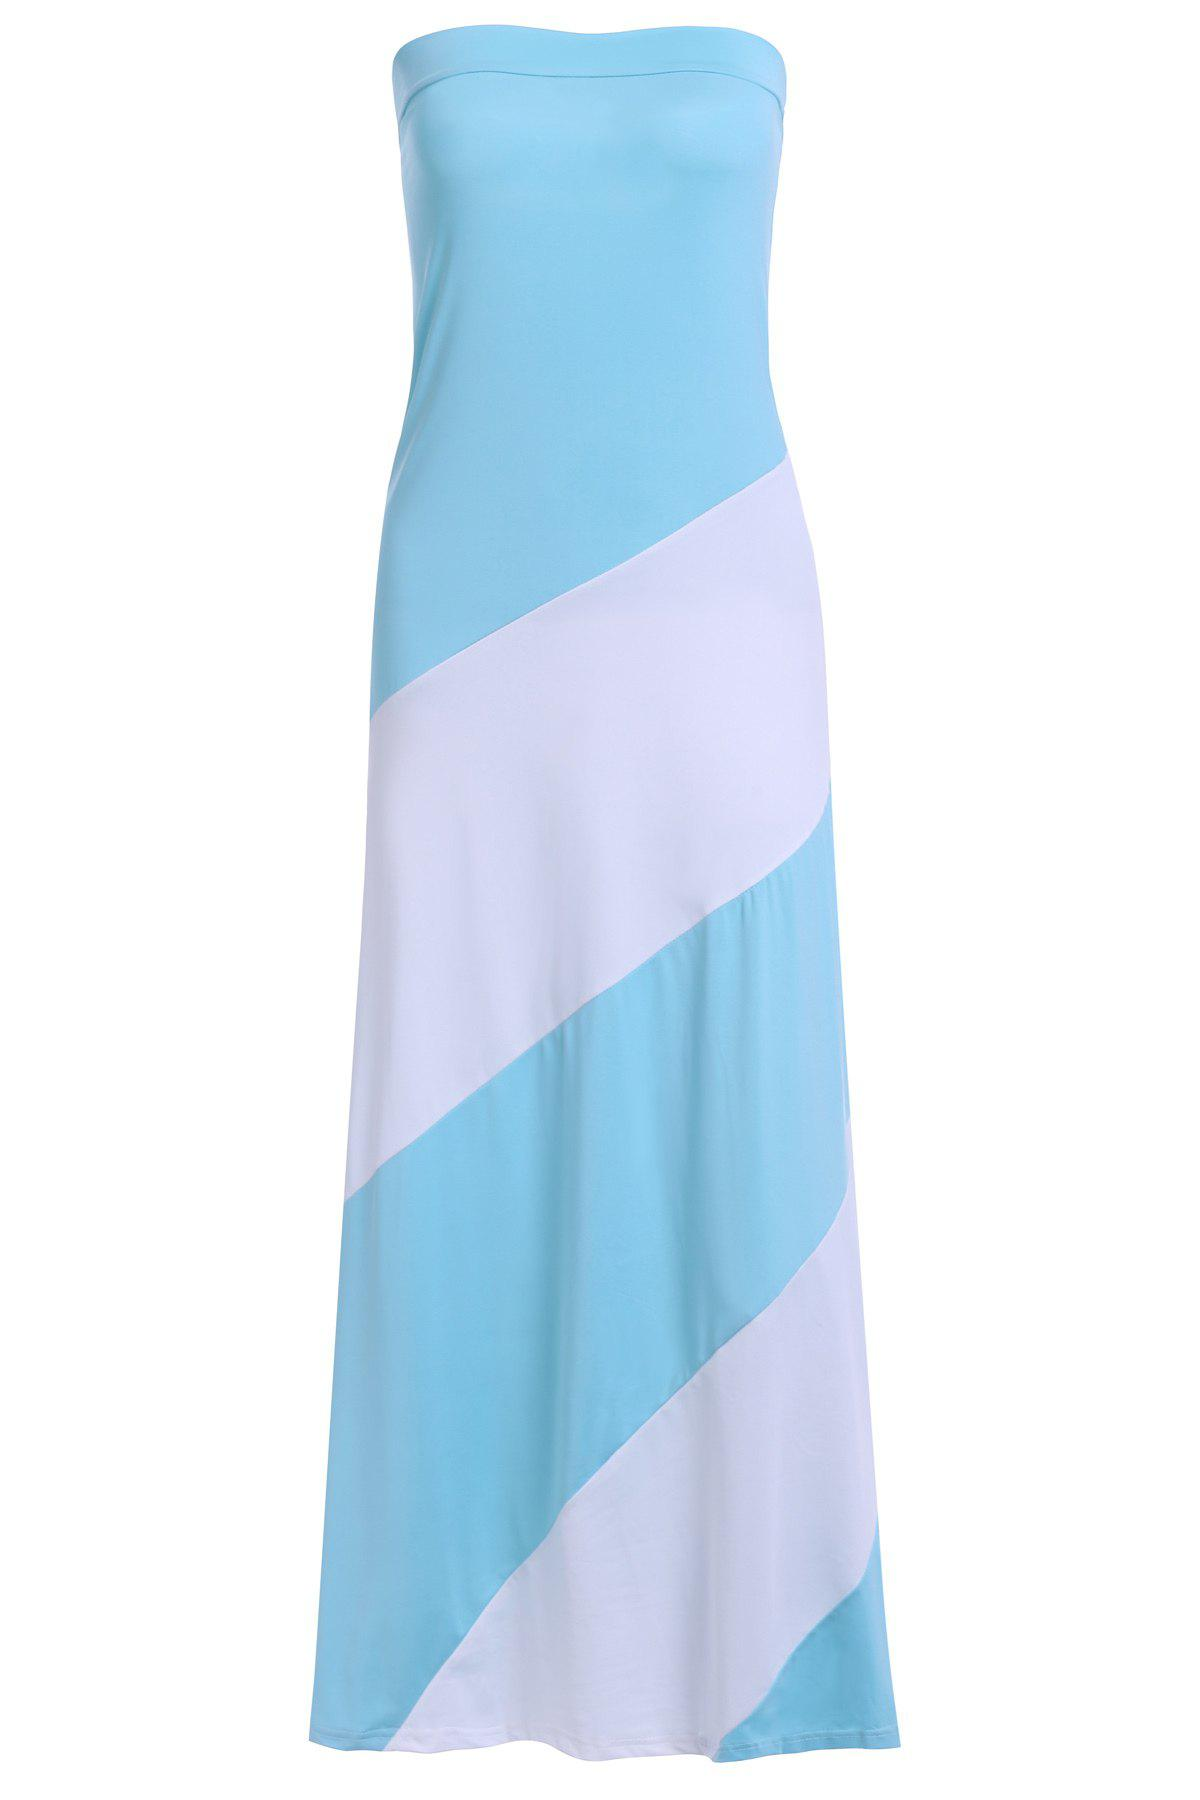 Allluring Color Block Strapless Women's Club Dress - LIGHT BLUE M